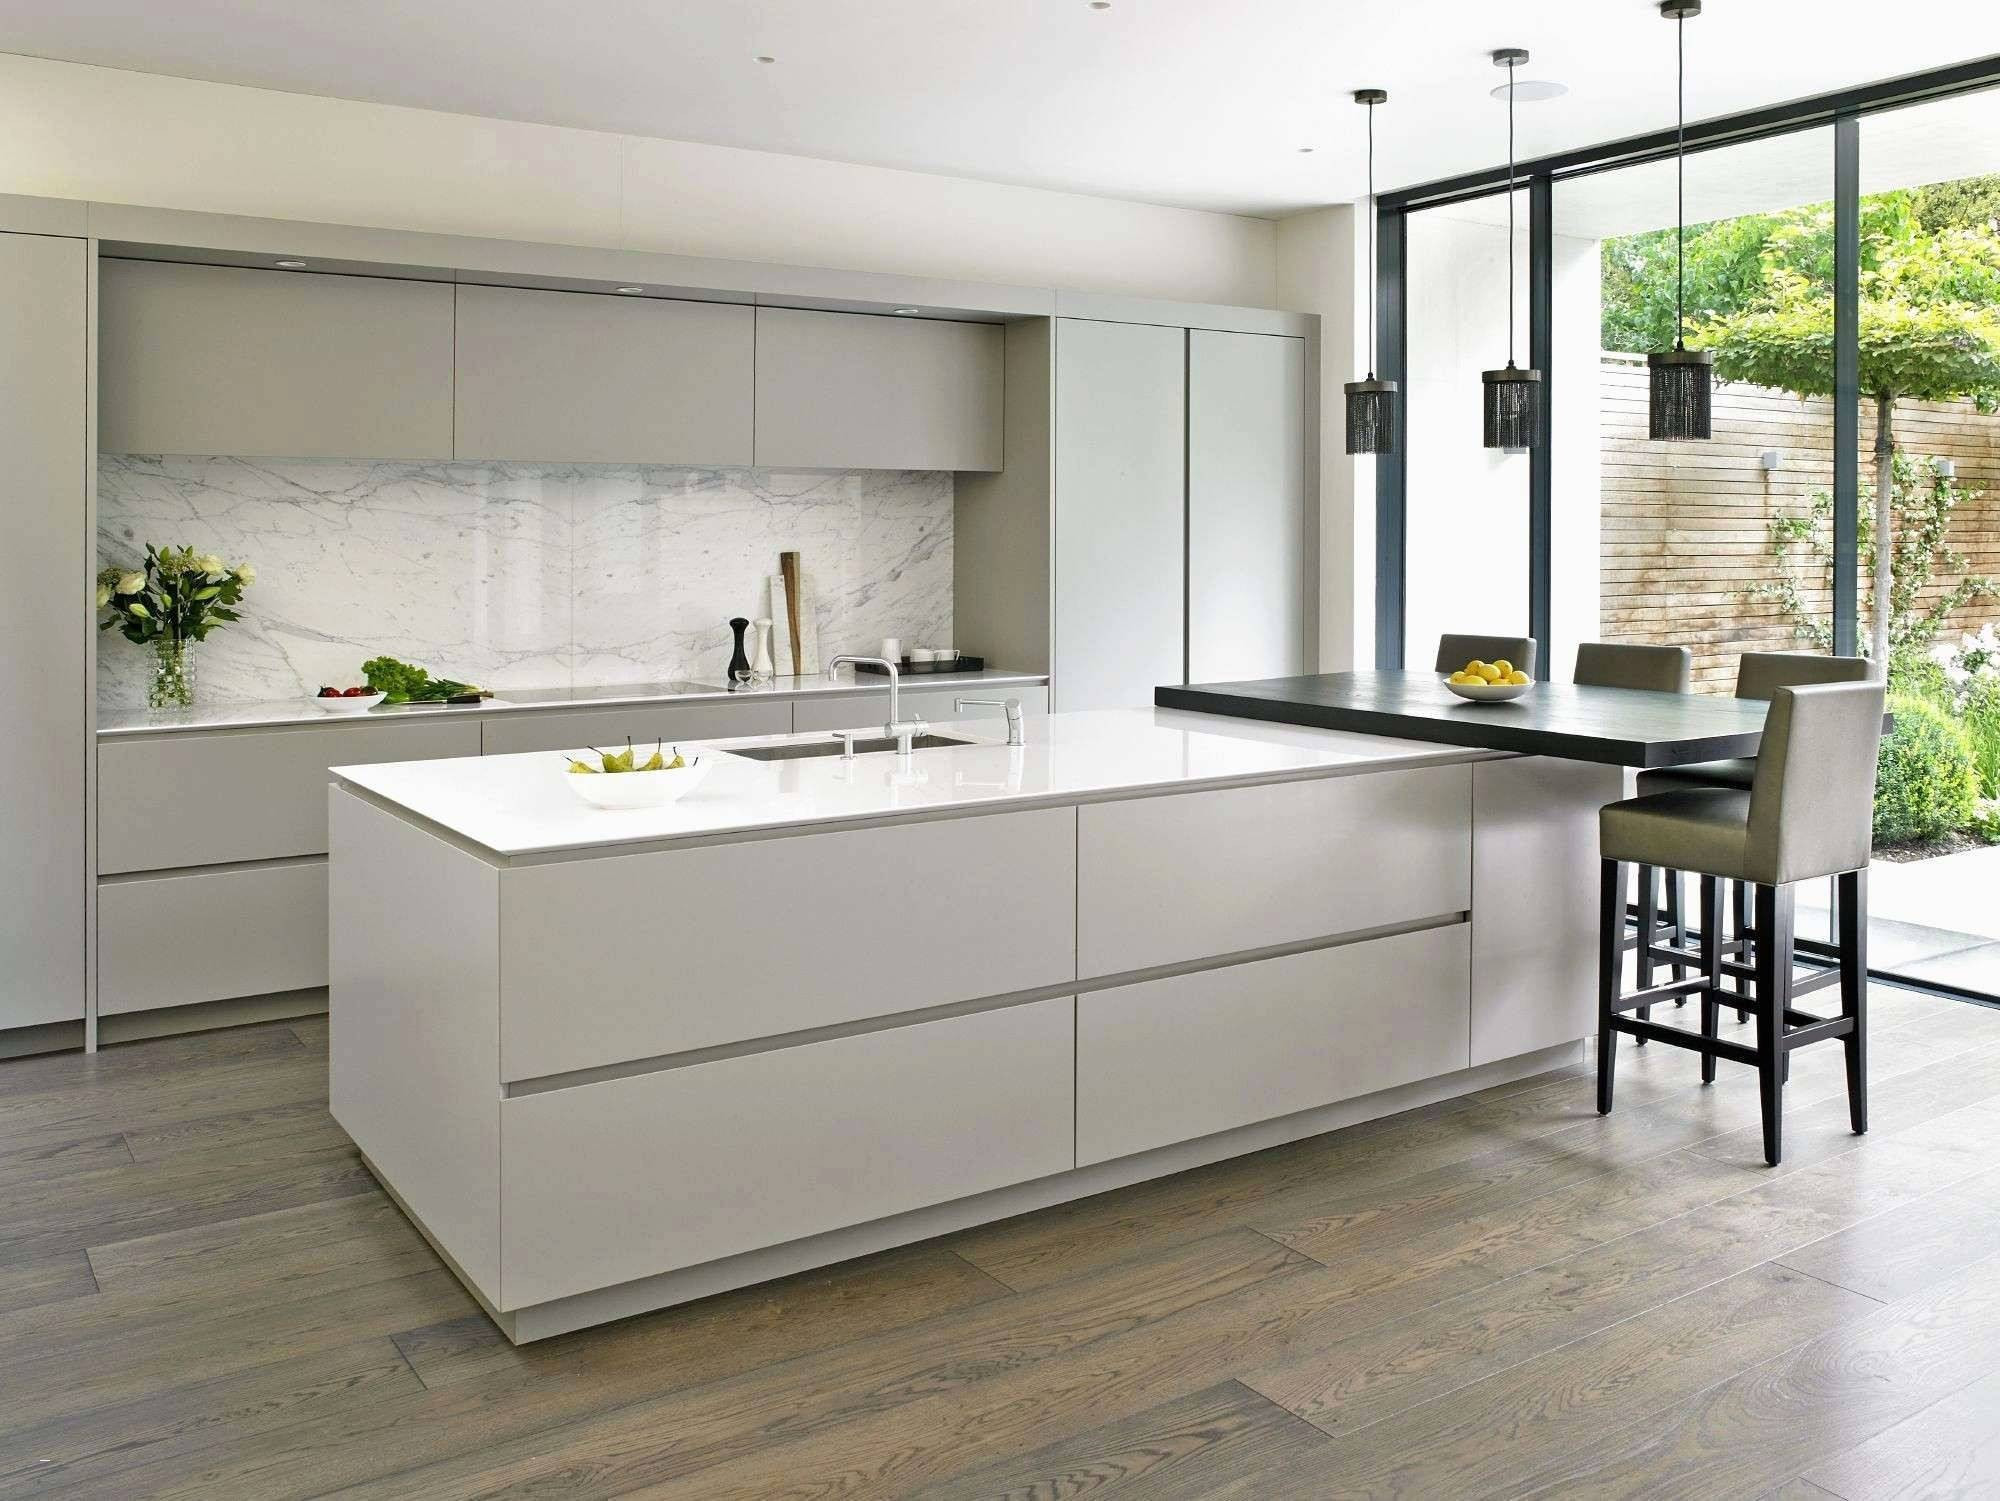 hardwood floors with dark cabinets of hardwood floor laminate beautiful transition from tile to wood regarding hardwood floor laminate lovely white laminate flooring unique cost for new kitchen cabinets new 0d of